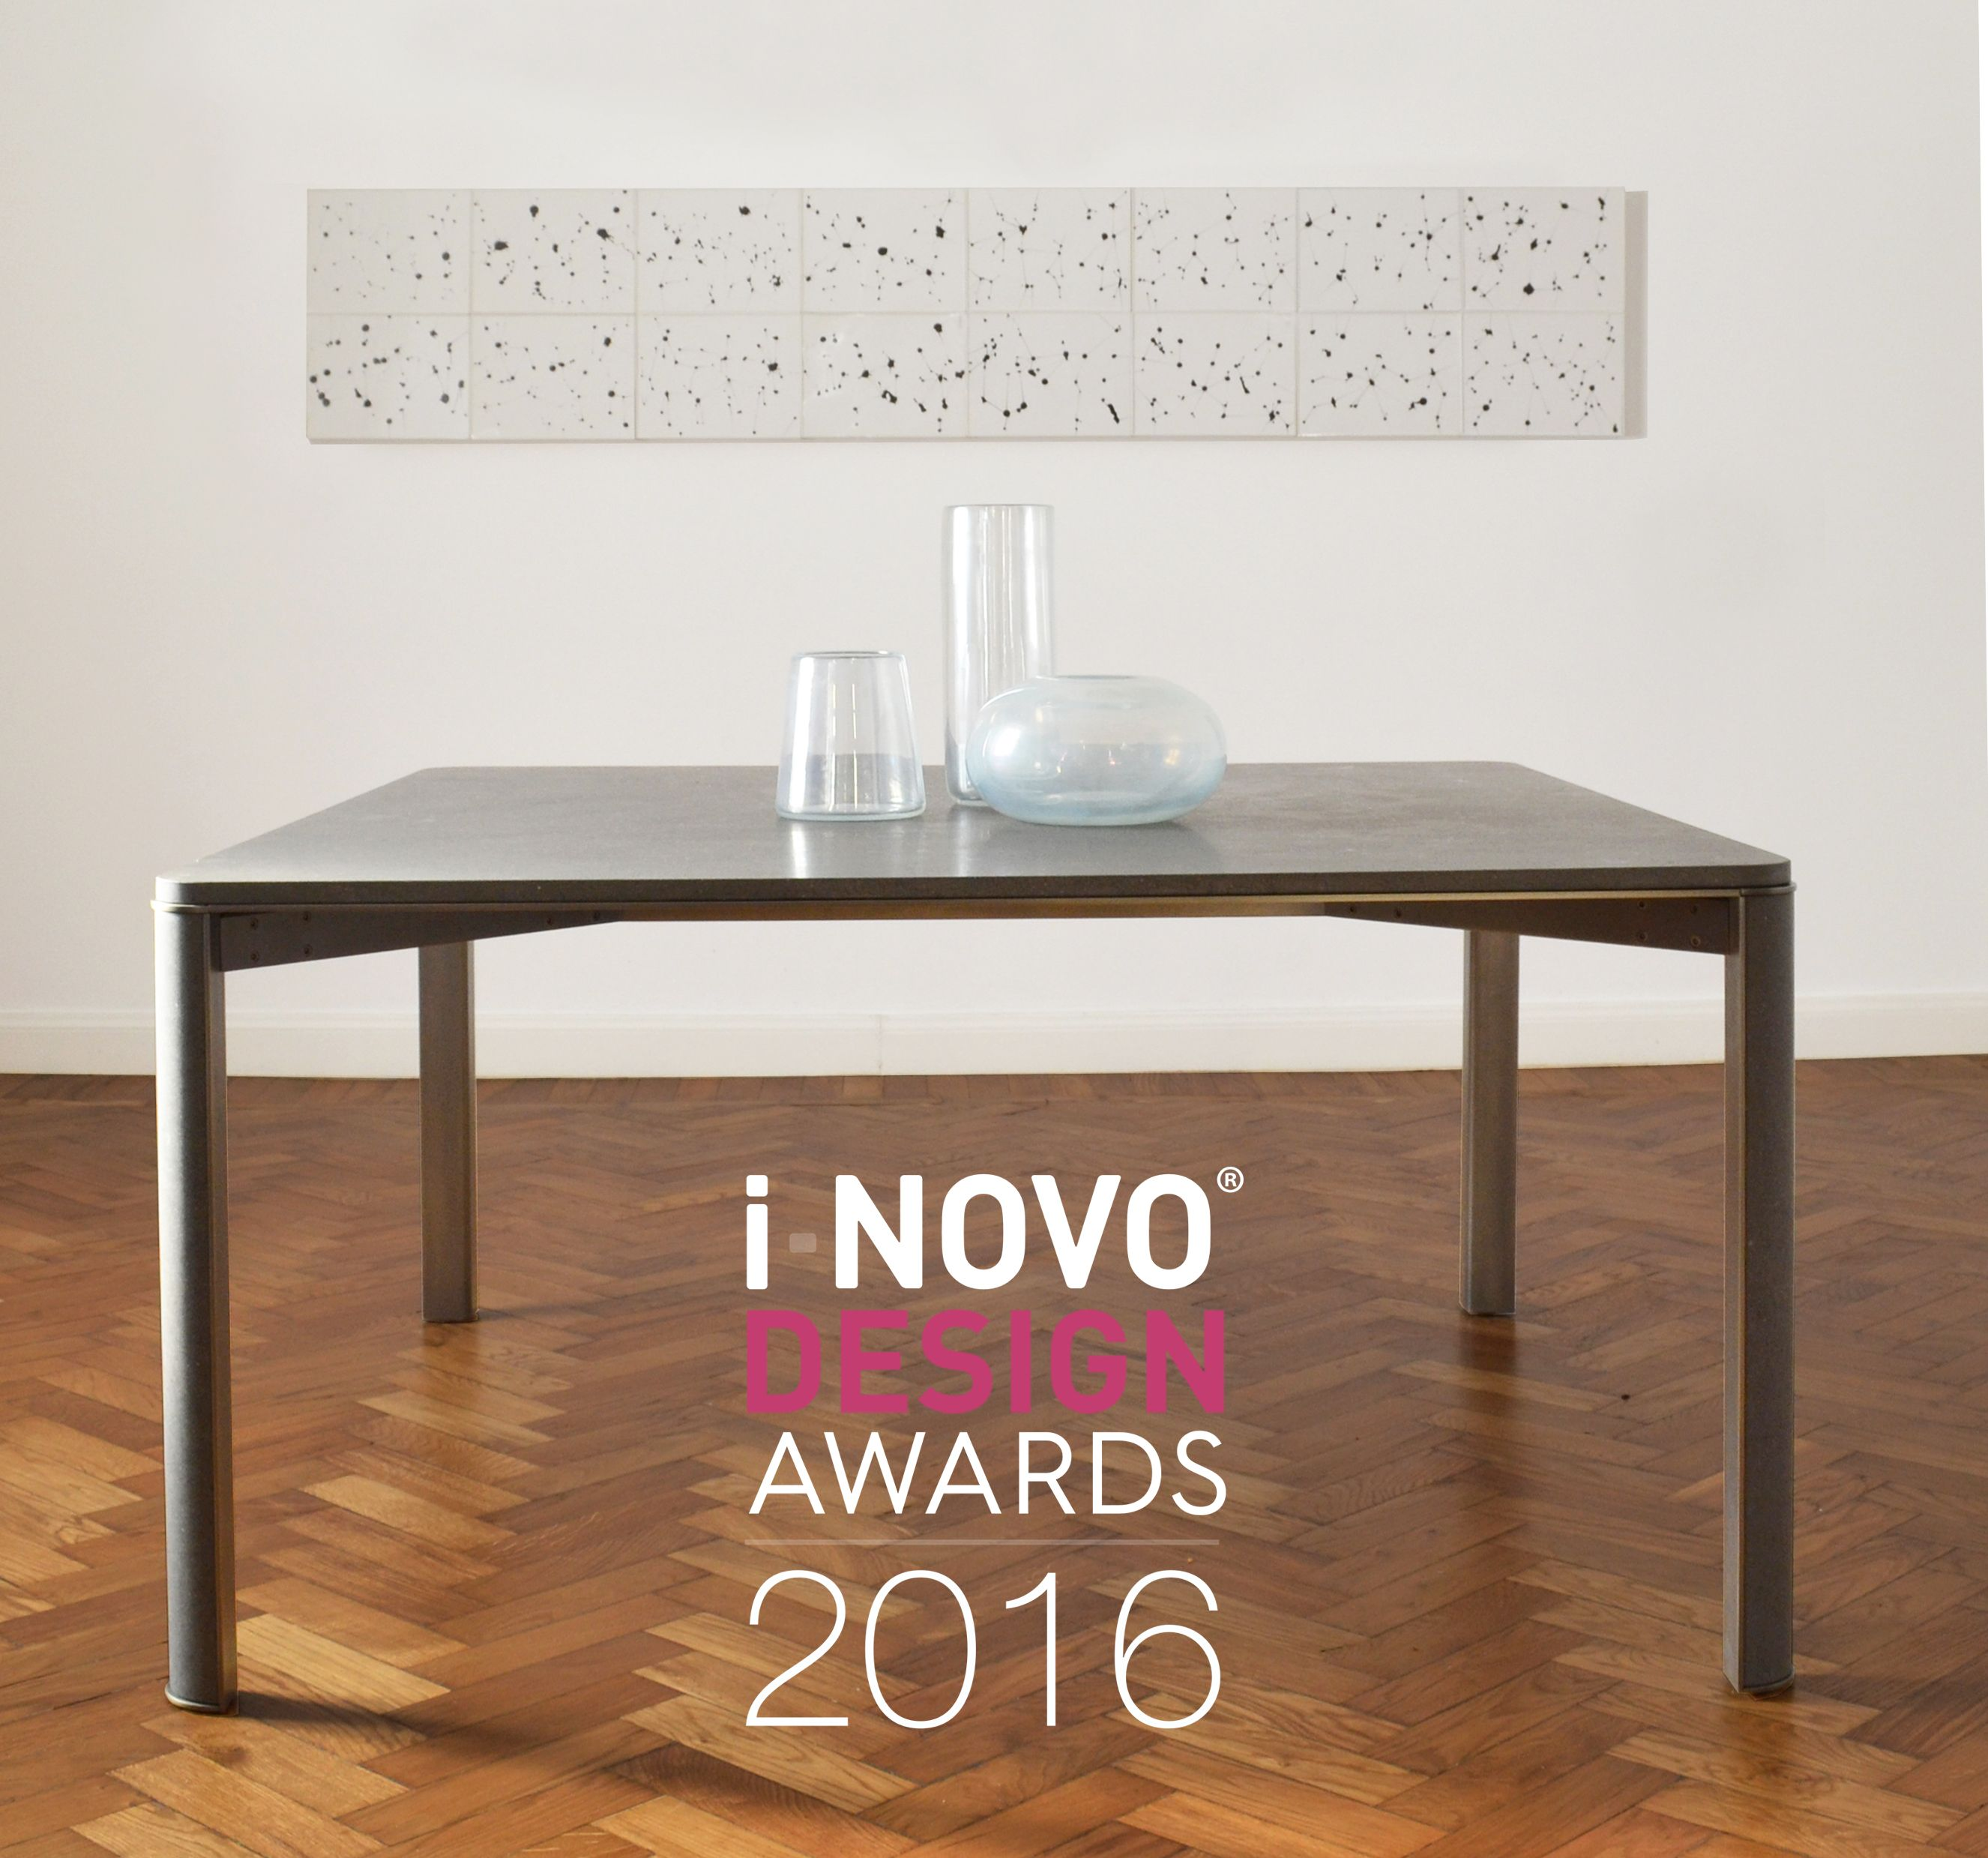 Gregorio is nominated by ArchiExpo i-NOVO awards at Salone del Mobile 2016  please vote on: http://inovo.archiexpo.com/vote-design/ - find Gregorio table - select it - scroll the page and confirm the vote with the blue botton IT'S DONE! #gregorio #table #inovo #archiExpo #award #design #living #livingroom